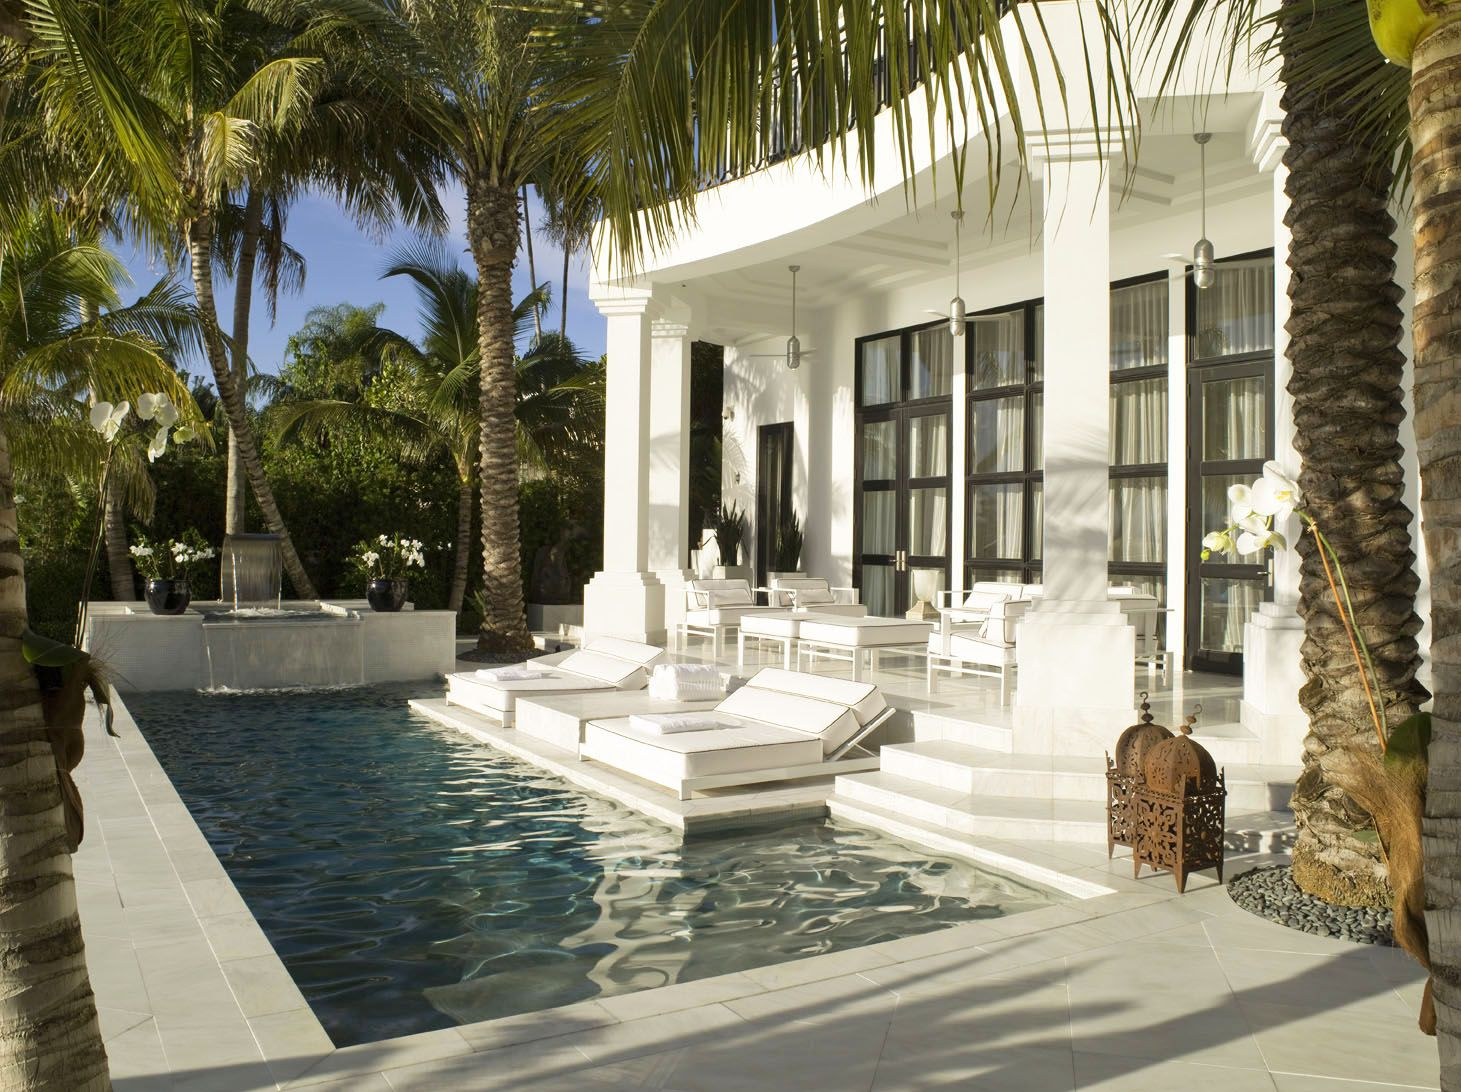 Modern White Poolside Area with Moroccan Antiques